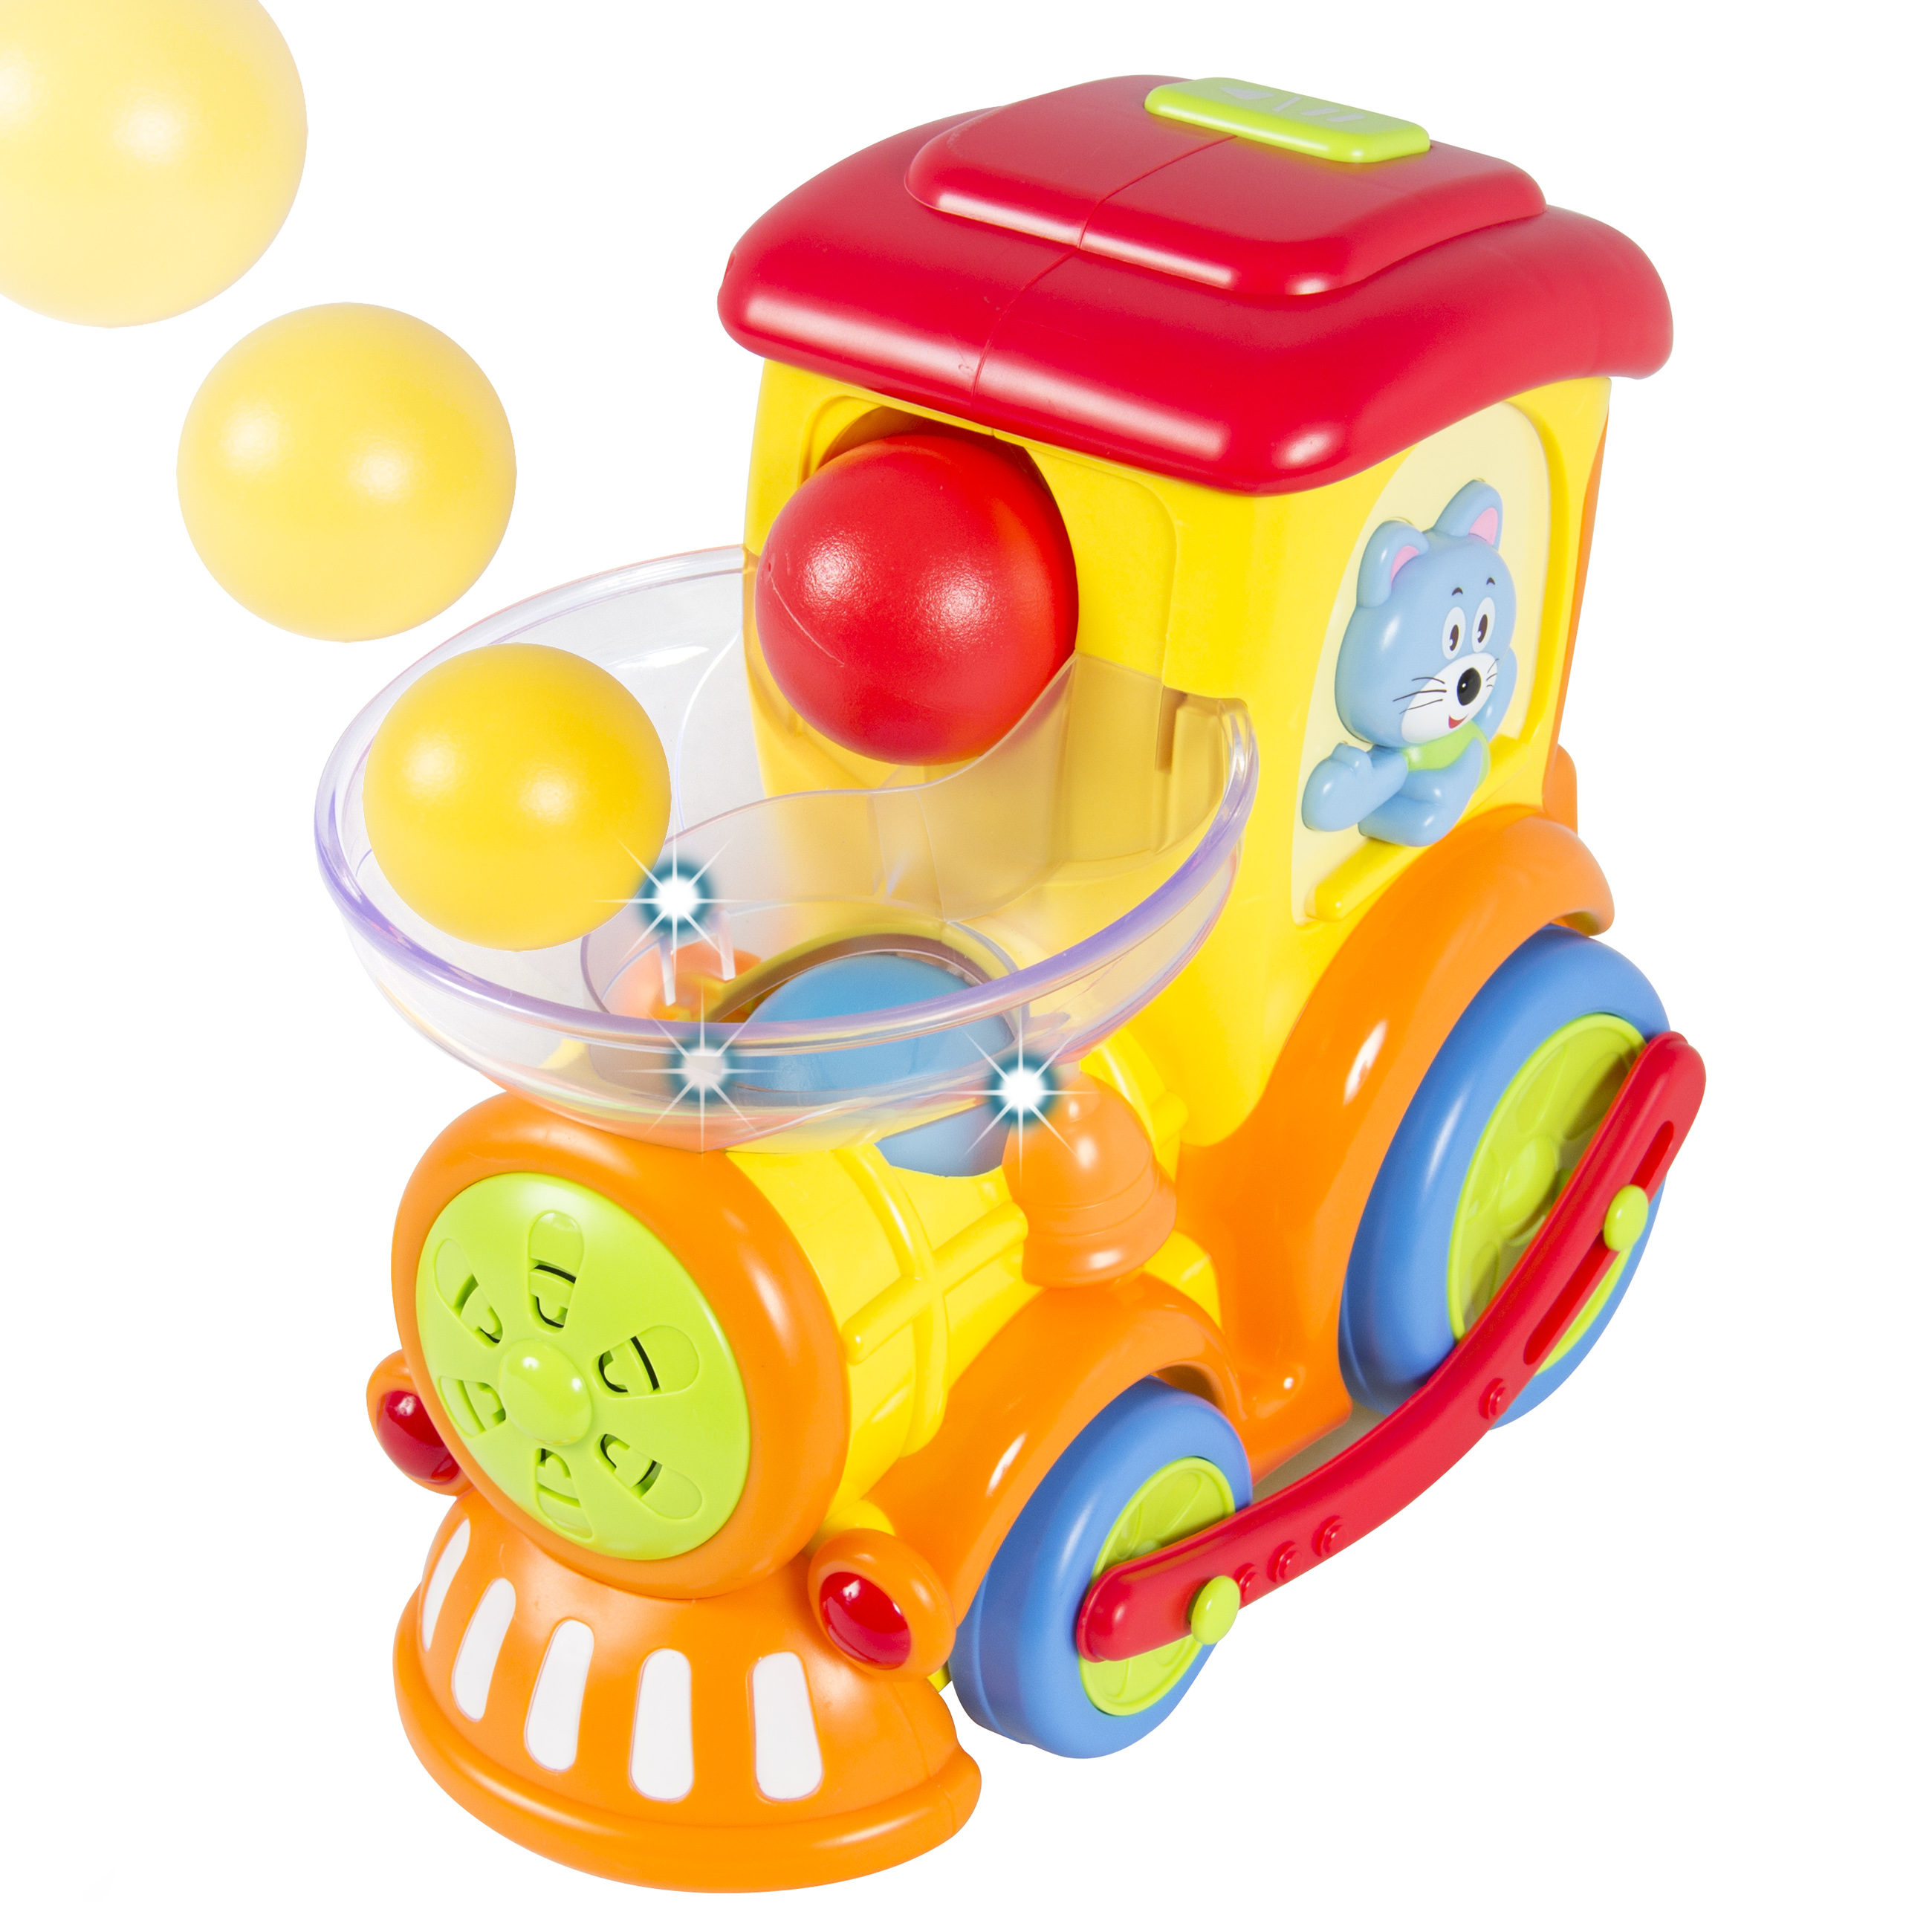 Drop and Go Train Toy, Talks, Sings and Drives on its Own 3 Activity Balls Included